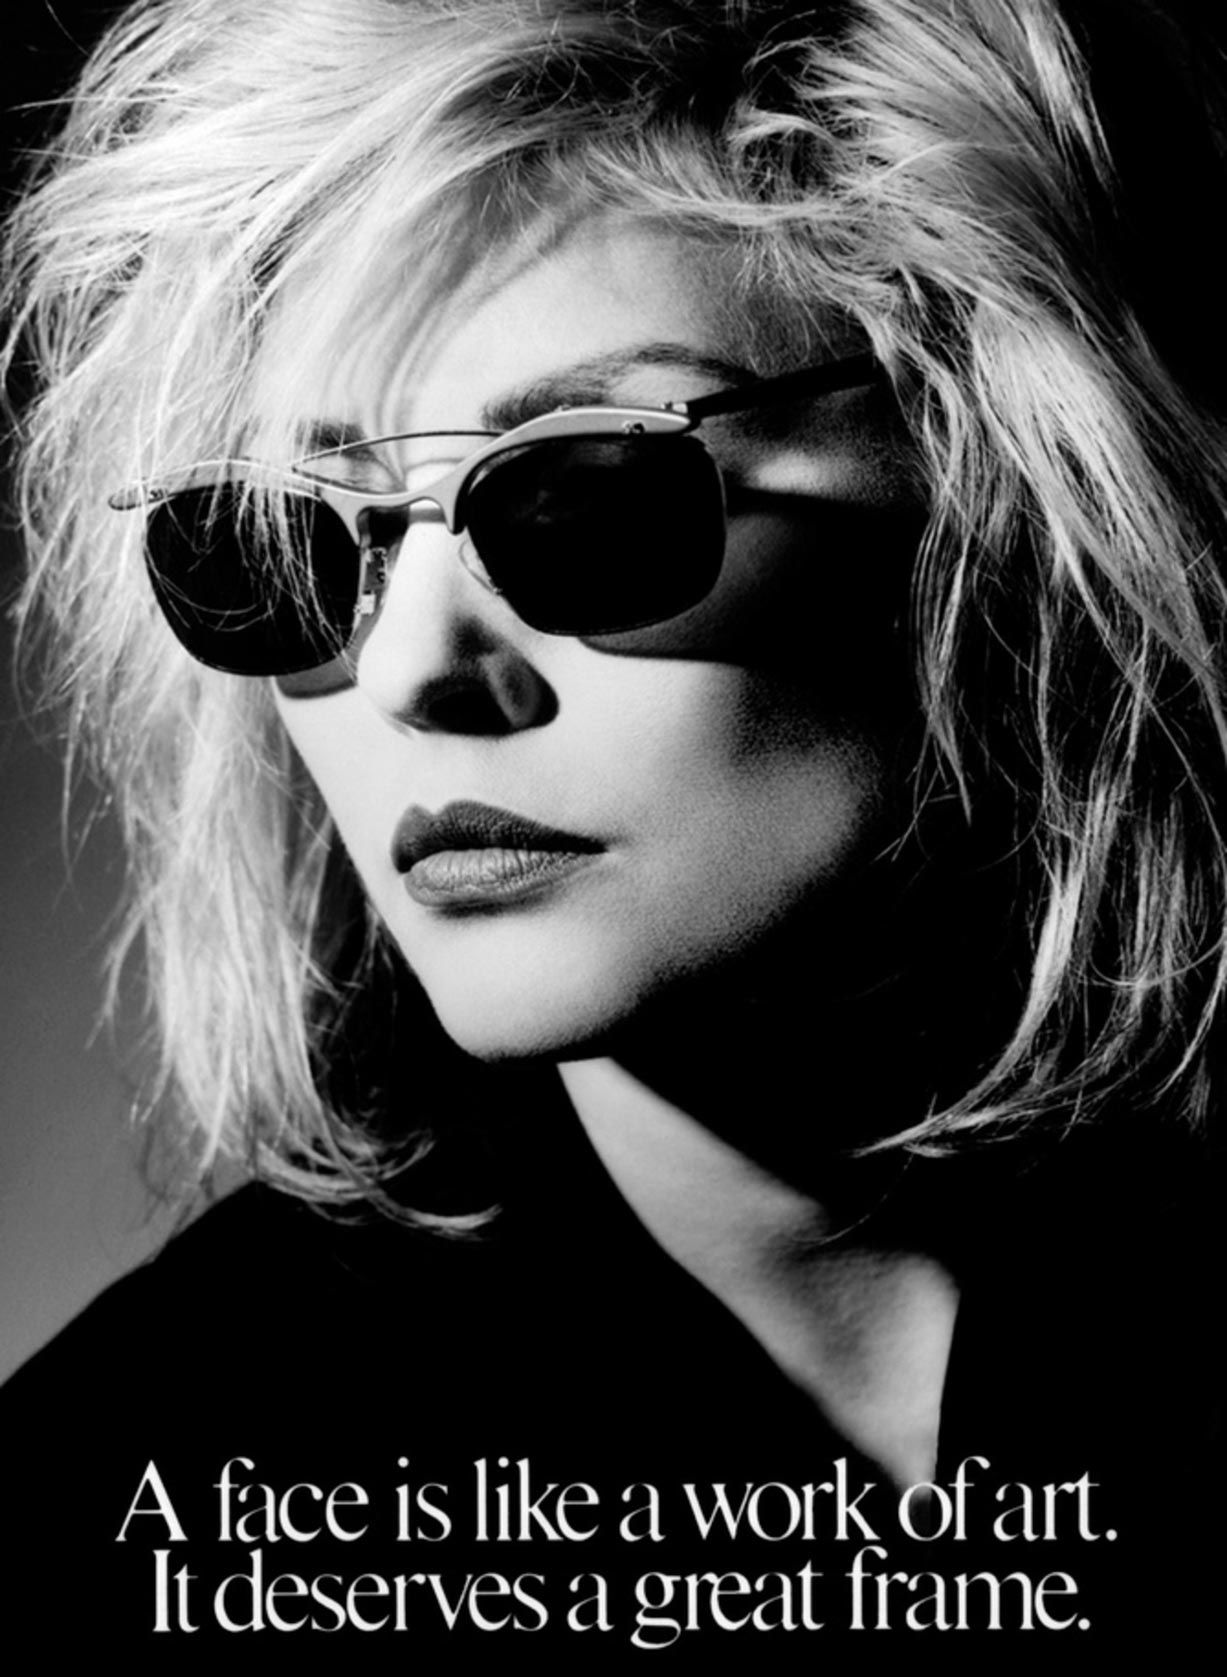 Debbie Harry / Дебби Харри - портрет фотографа Грега Гормана / Greg Gorman